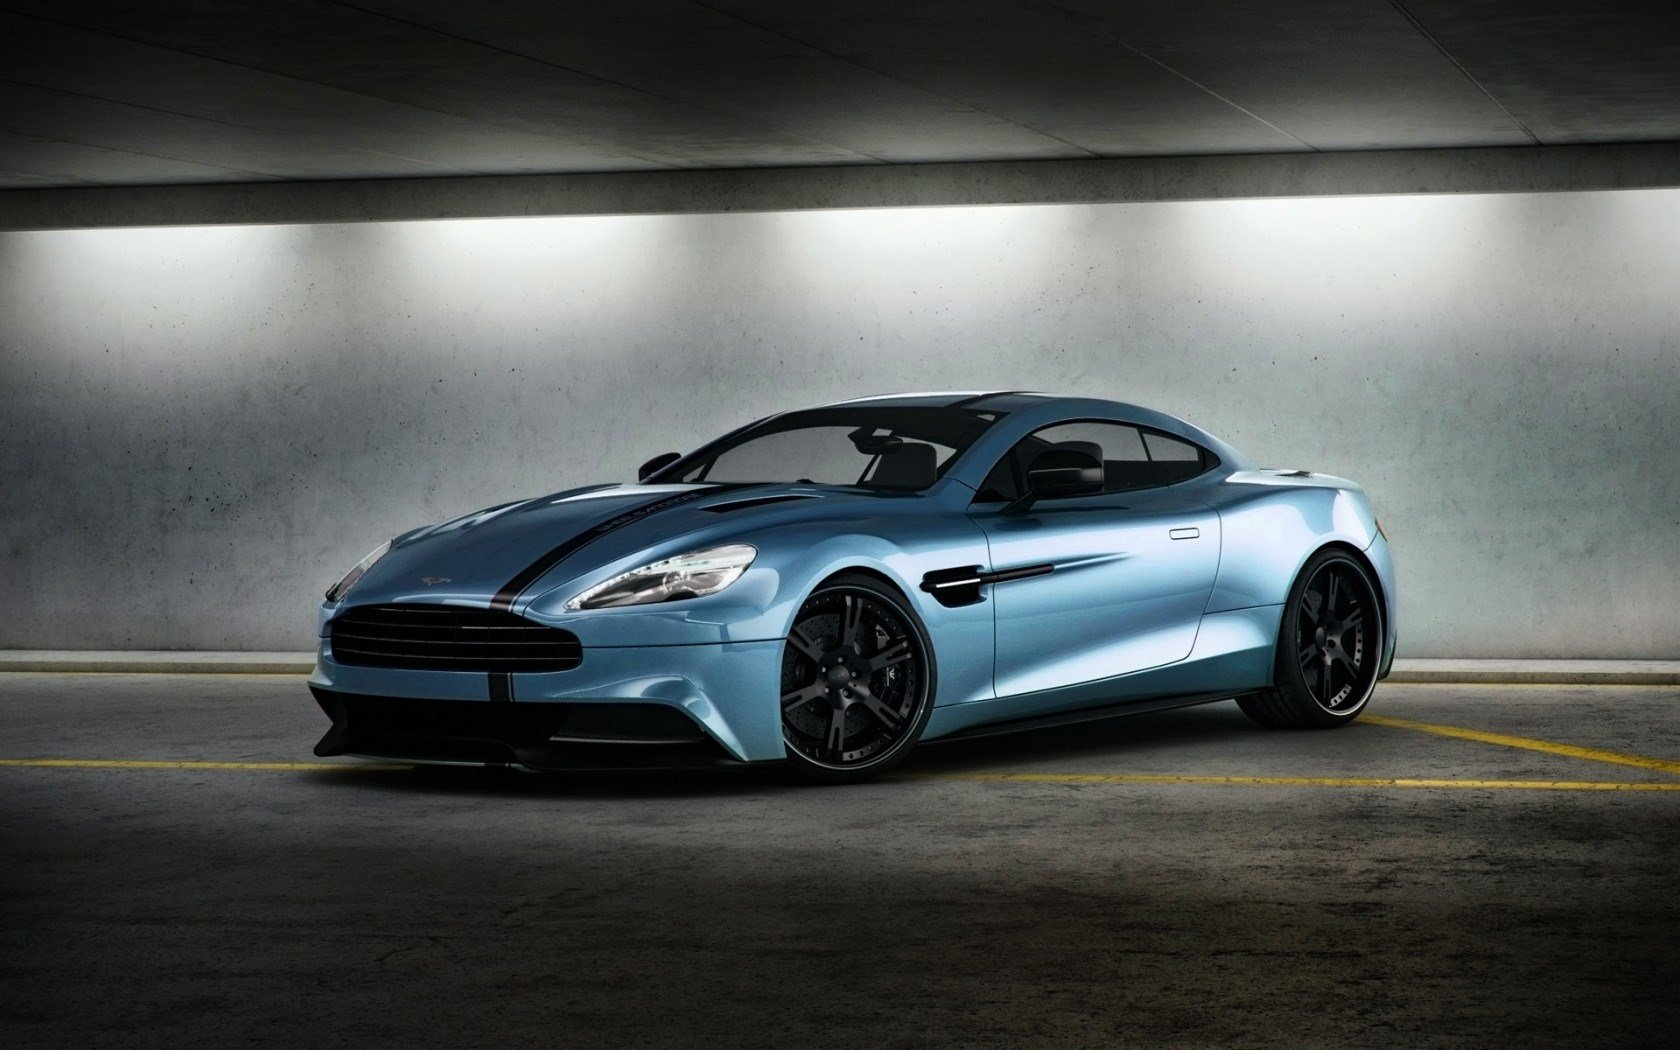 Aston Martin Vanquish Wallpaper and Background Image 1680x1050 1680x1050